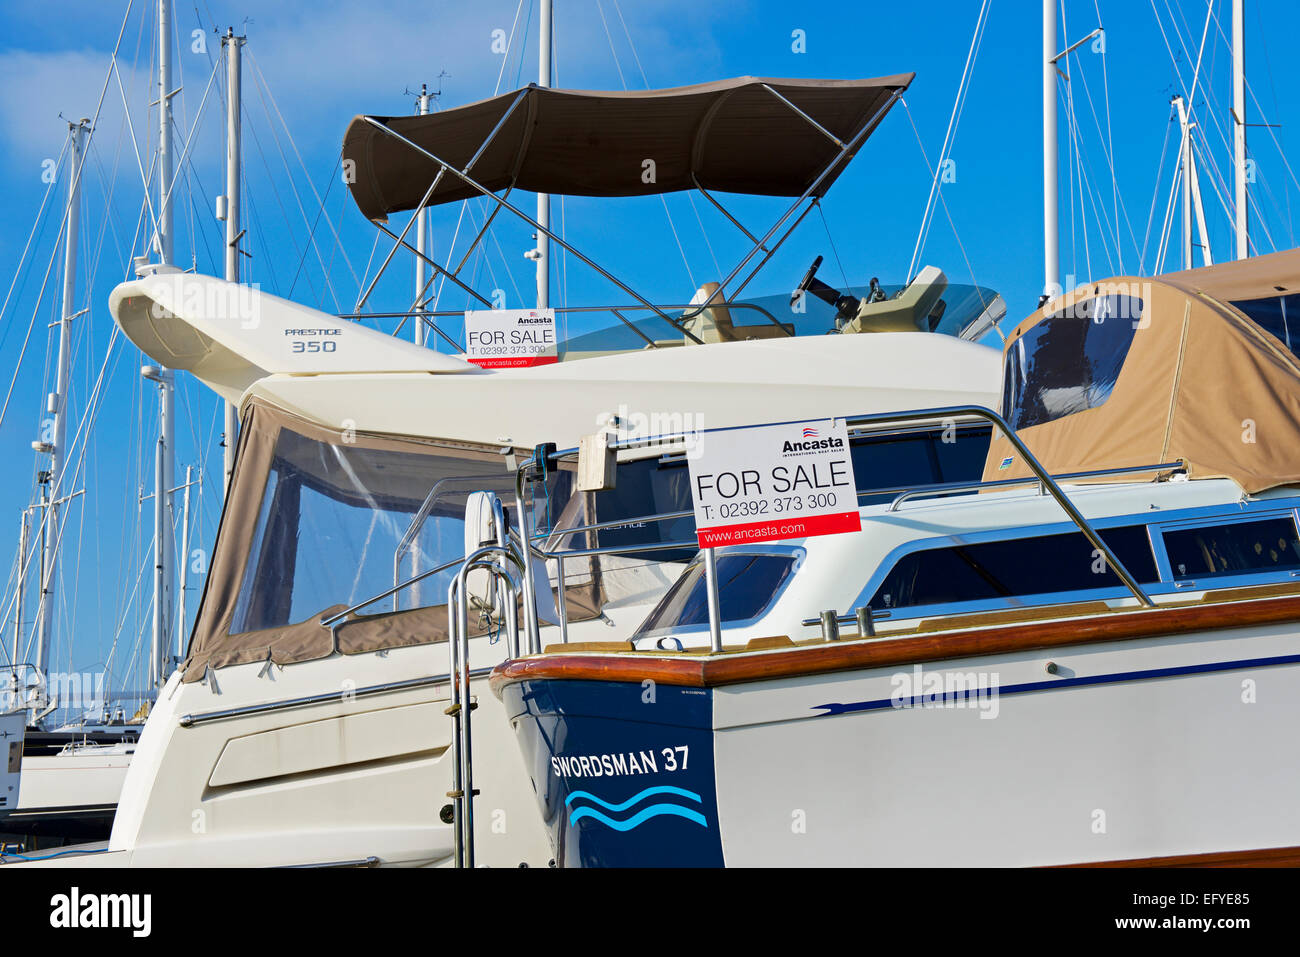 Luxury boats for sale in the marina at Port Solent, Portsmouth, Hampshire, England UK - Stock Image